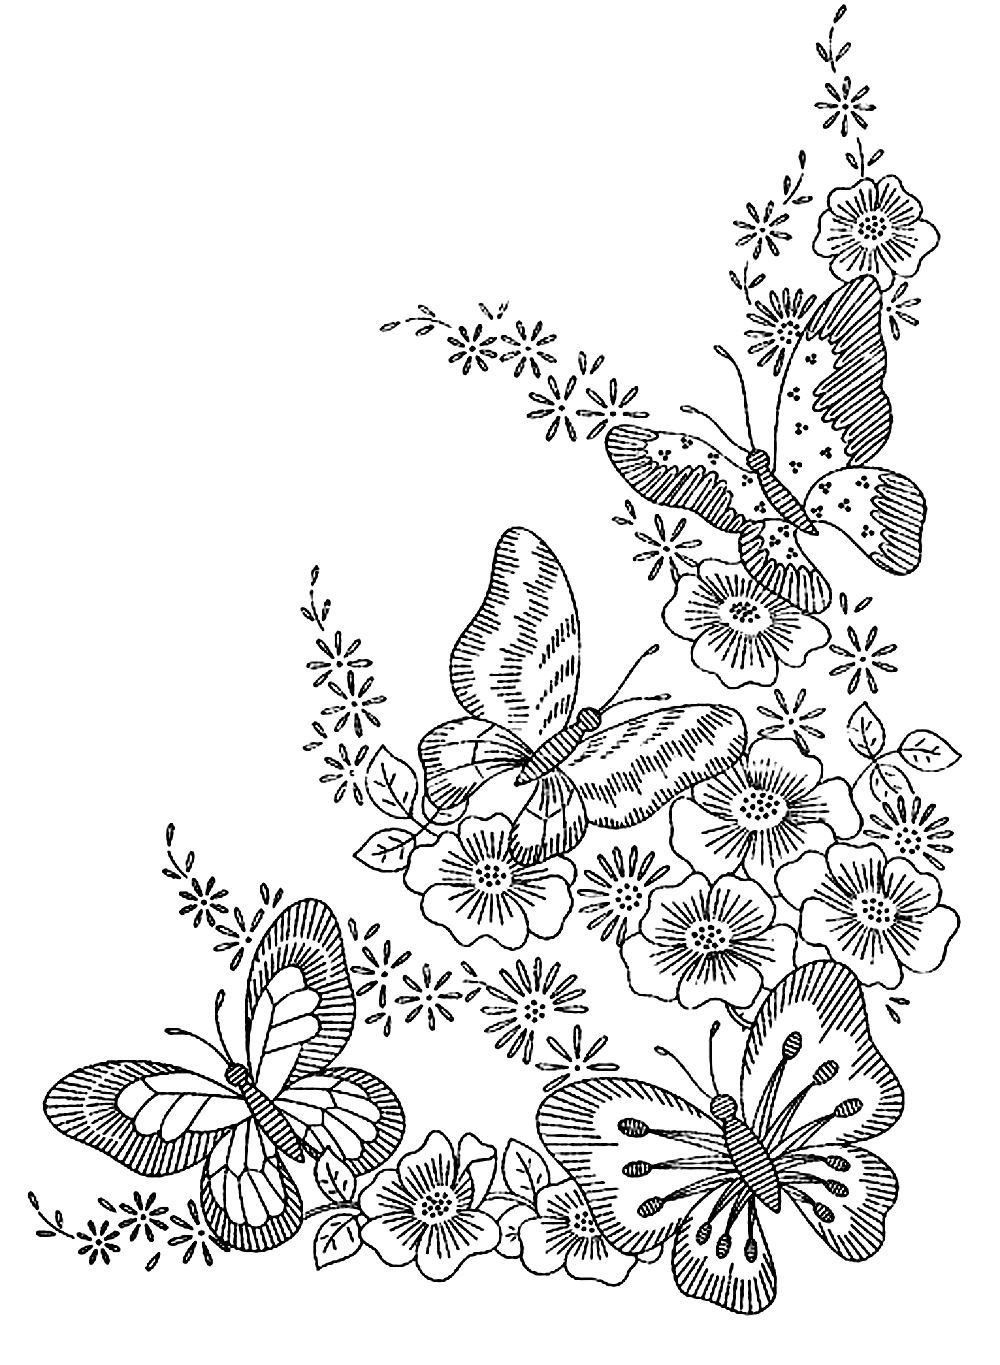 Coloring Pictures Of Flowers And Butterflies Lovely To Print This Free Coloring Page Coloring Adul Butterfly Coloring Page Flower Coloring Pages Coloring Books